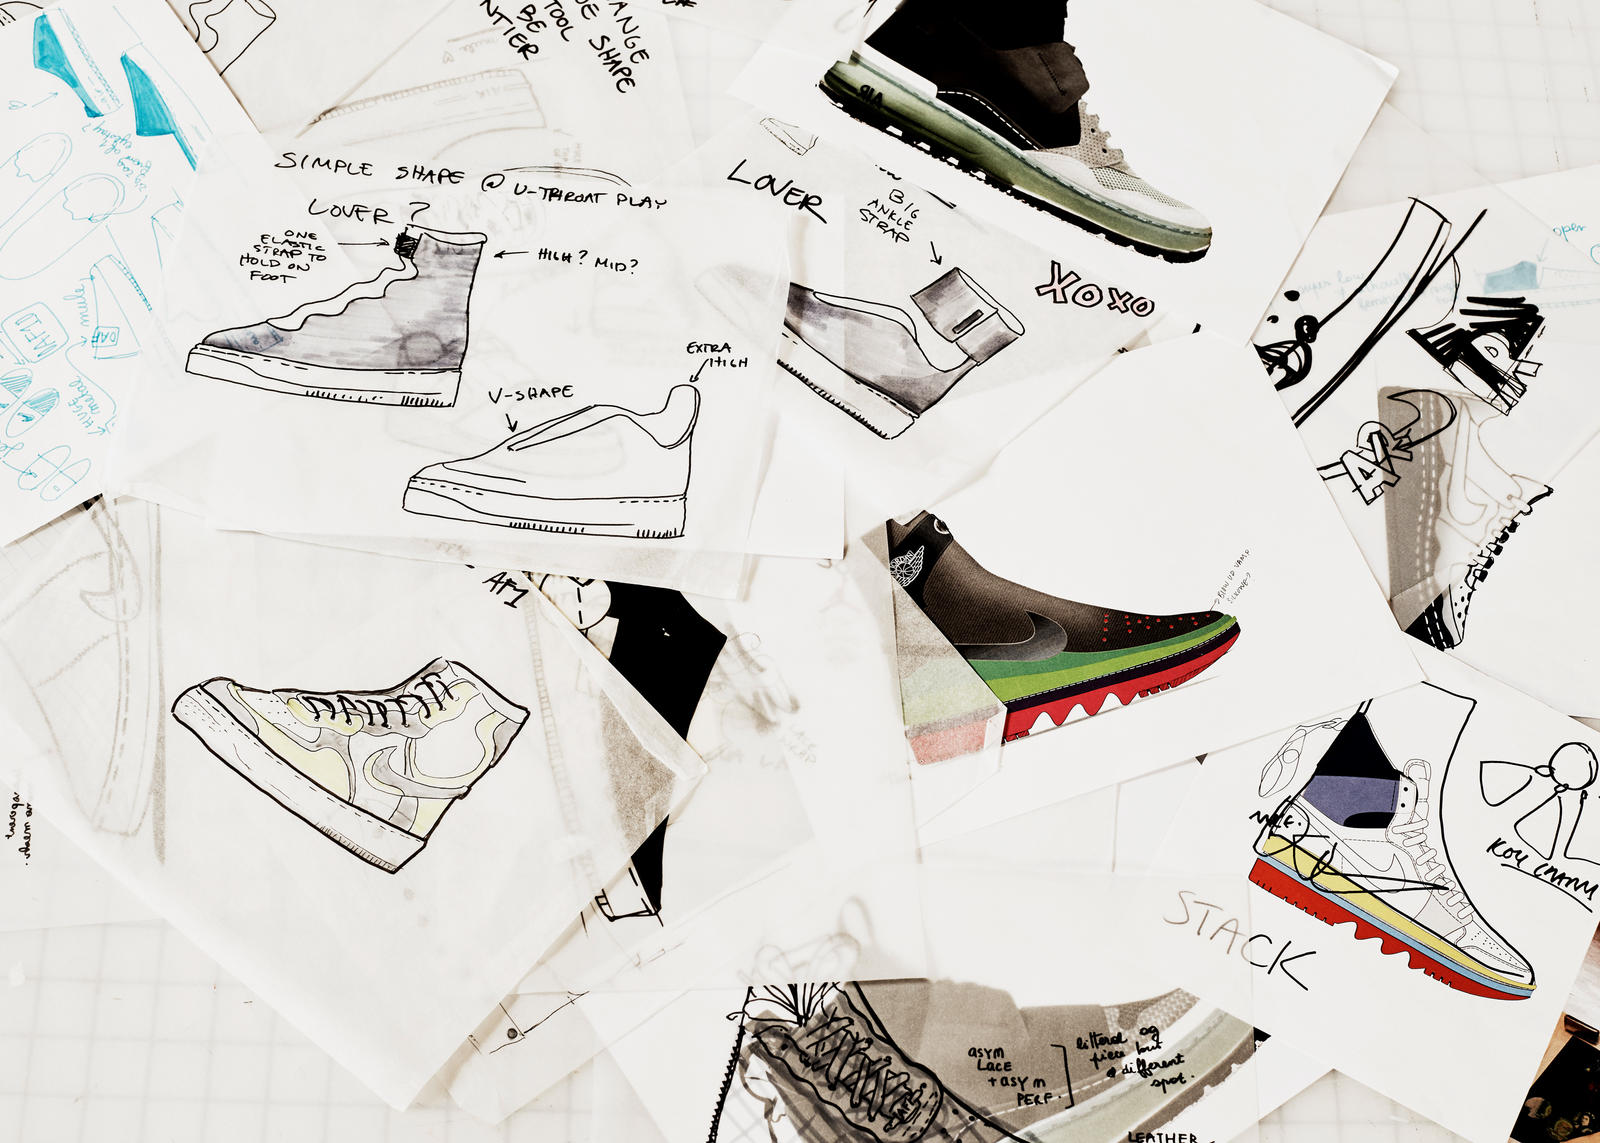 The 1 Reimagined – The women of Nike redesign the Air Jordan 1 and Air Force 1